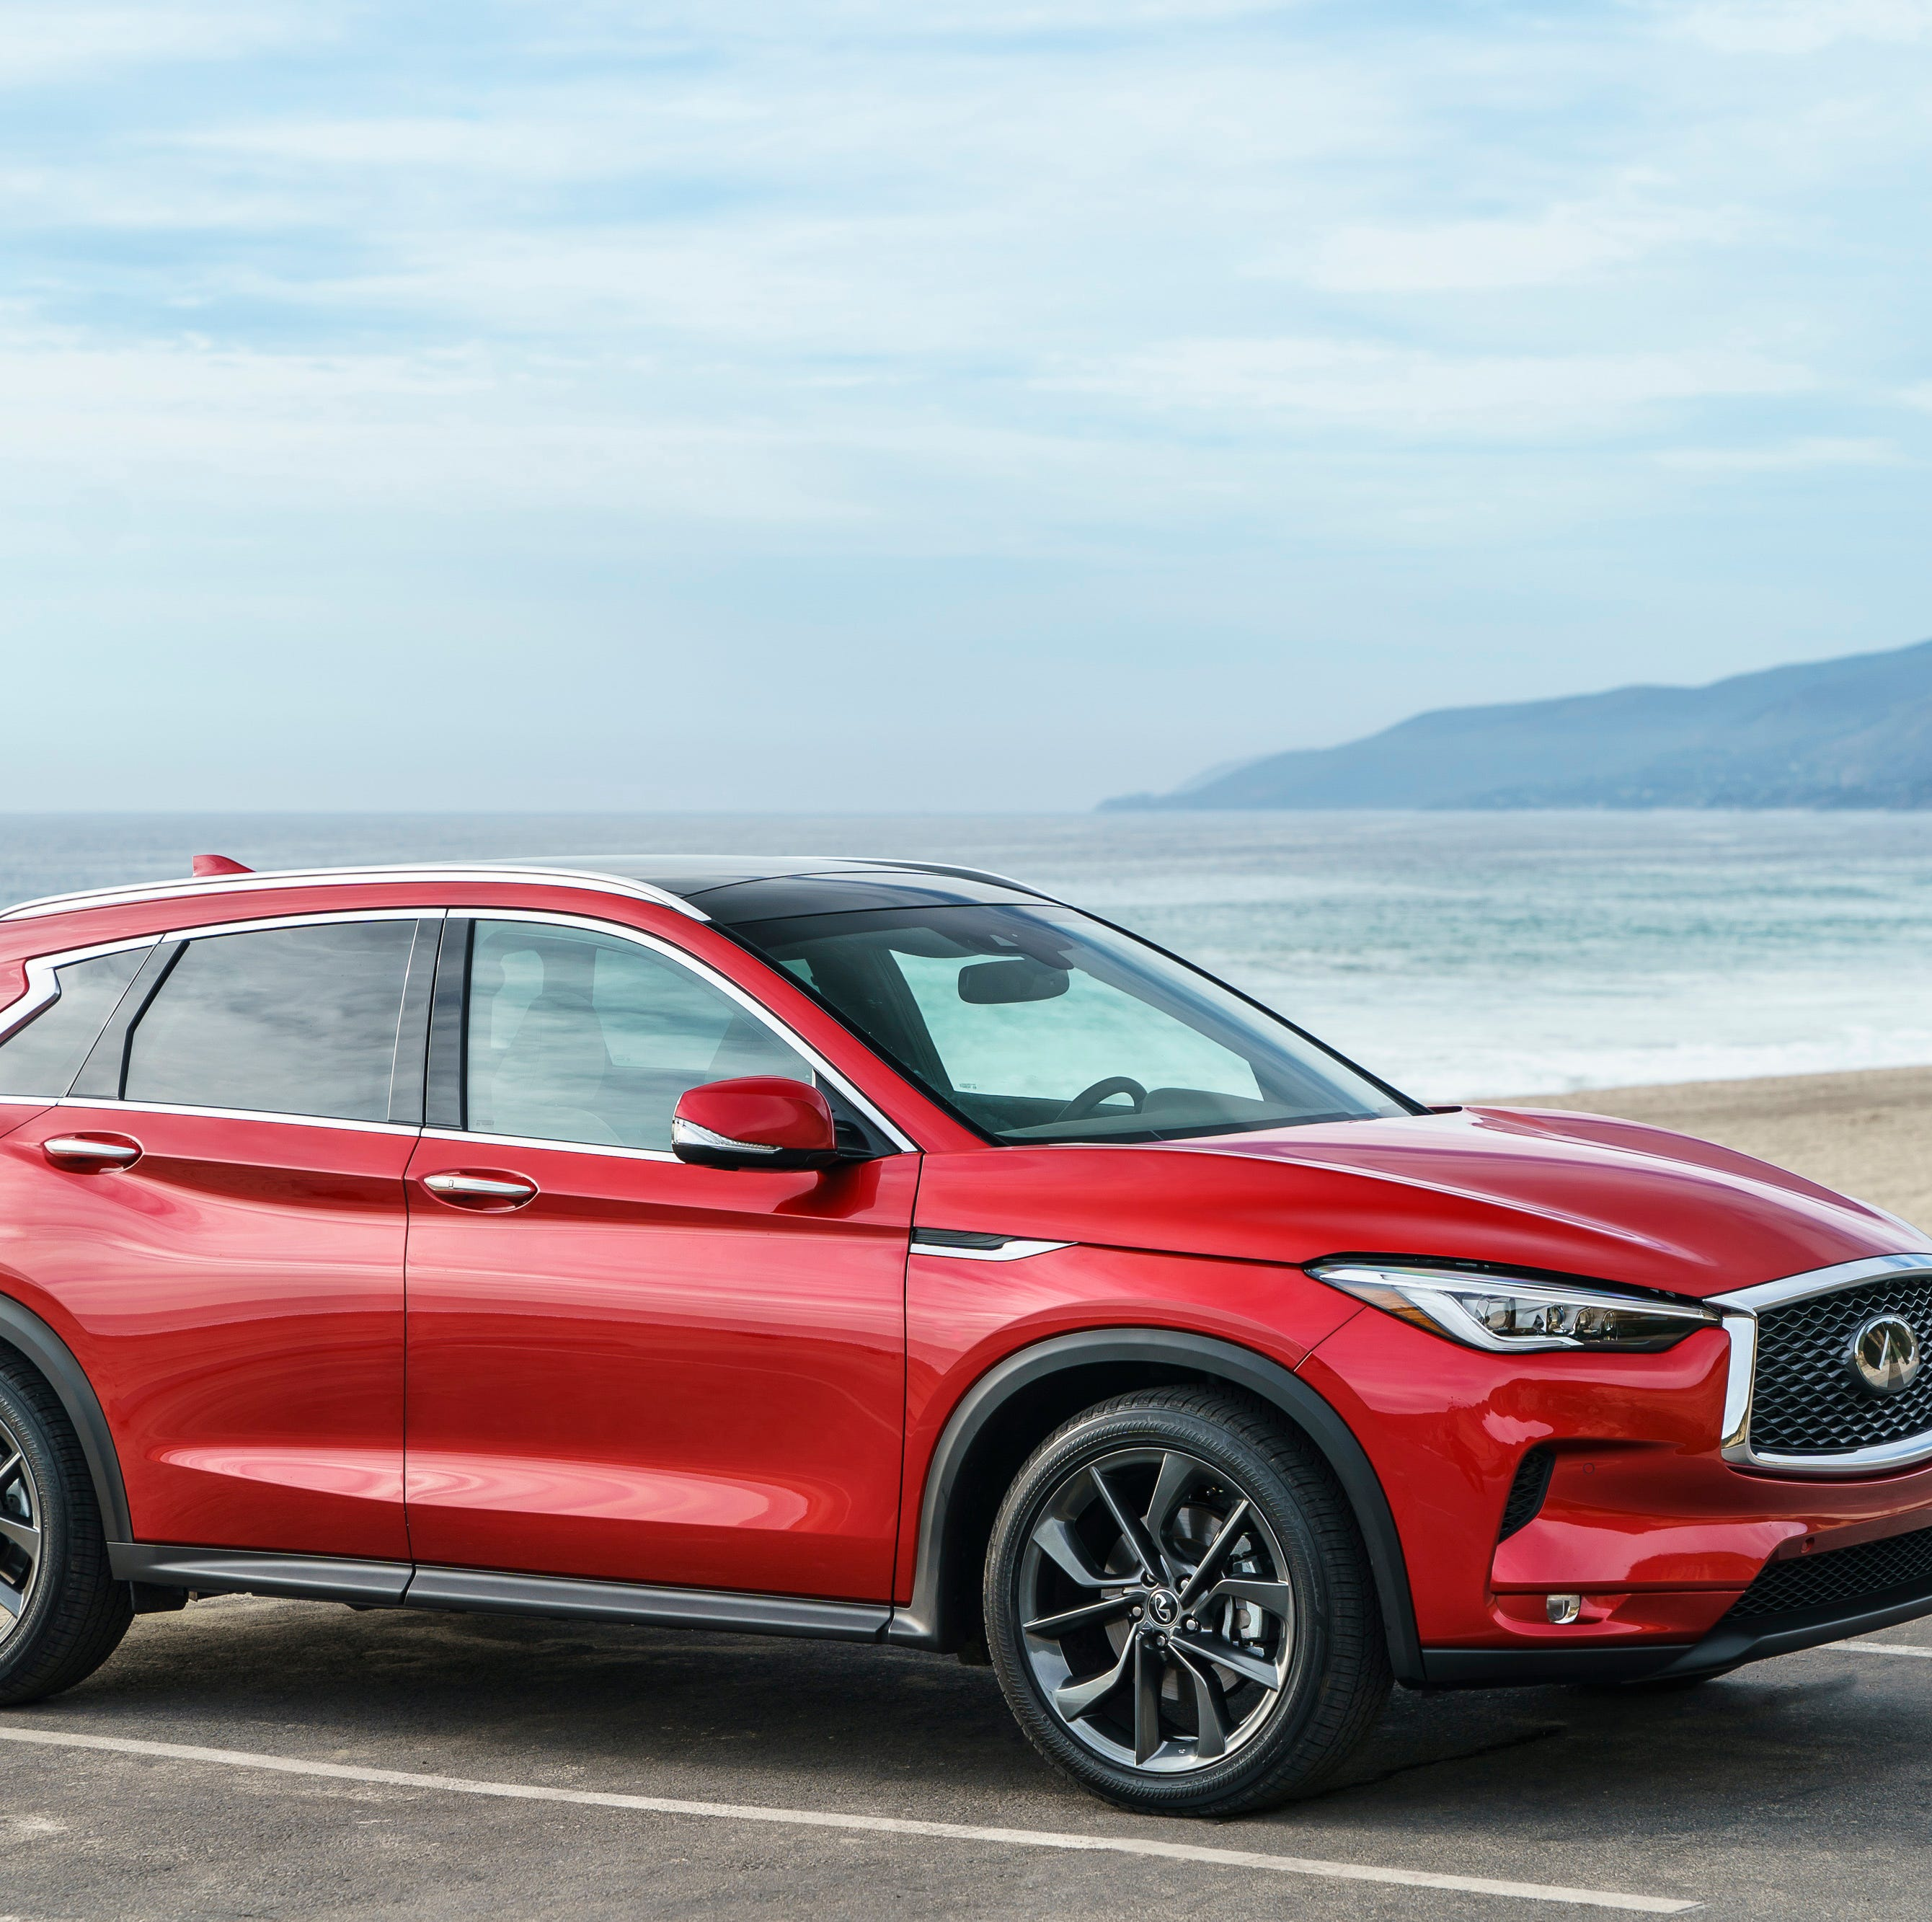 Infiniti QX50 is an engineering tour de force